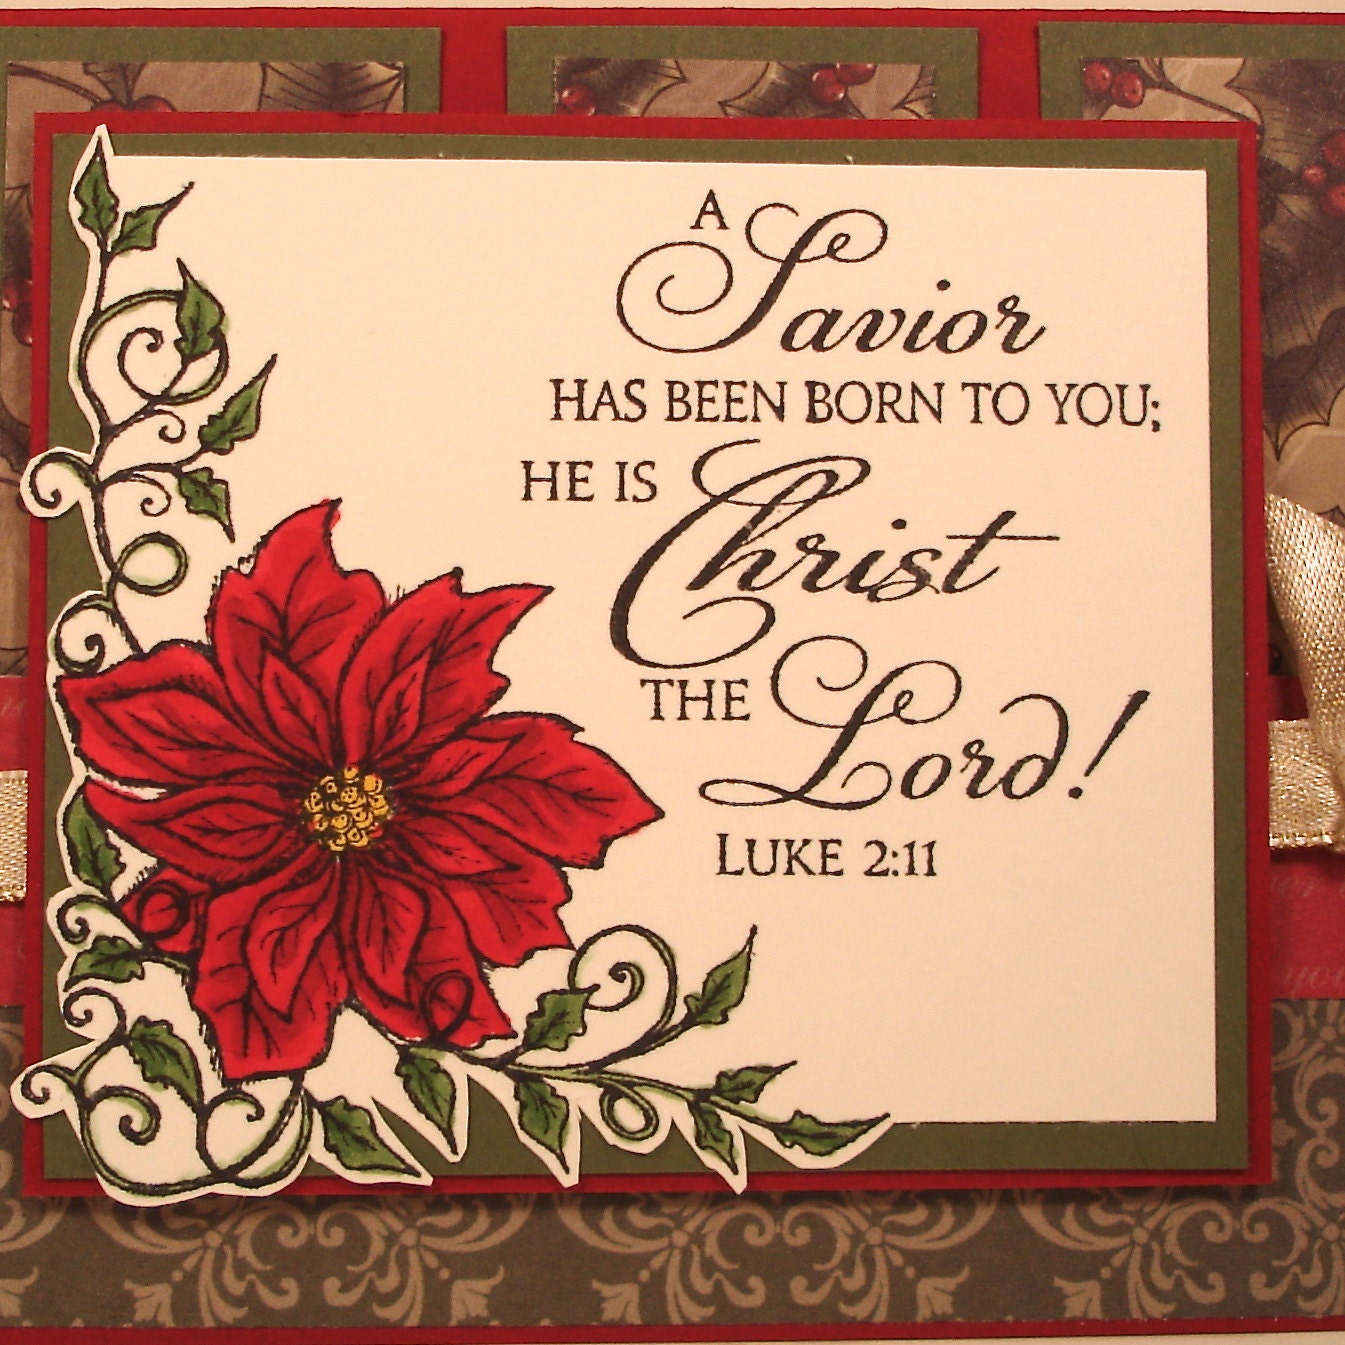 Christmas Quotes For Cards: Religious Christmas Card With Bible Verse And Poinsettia